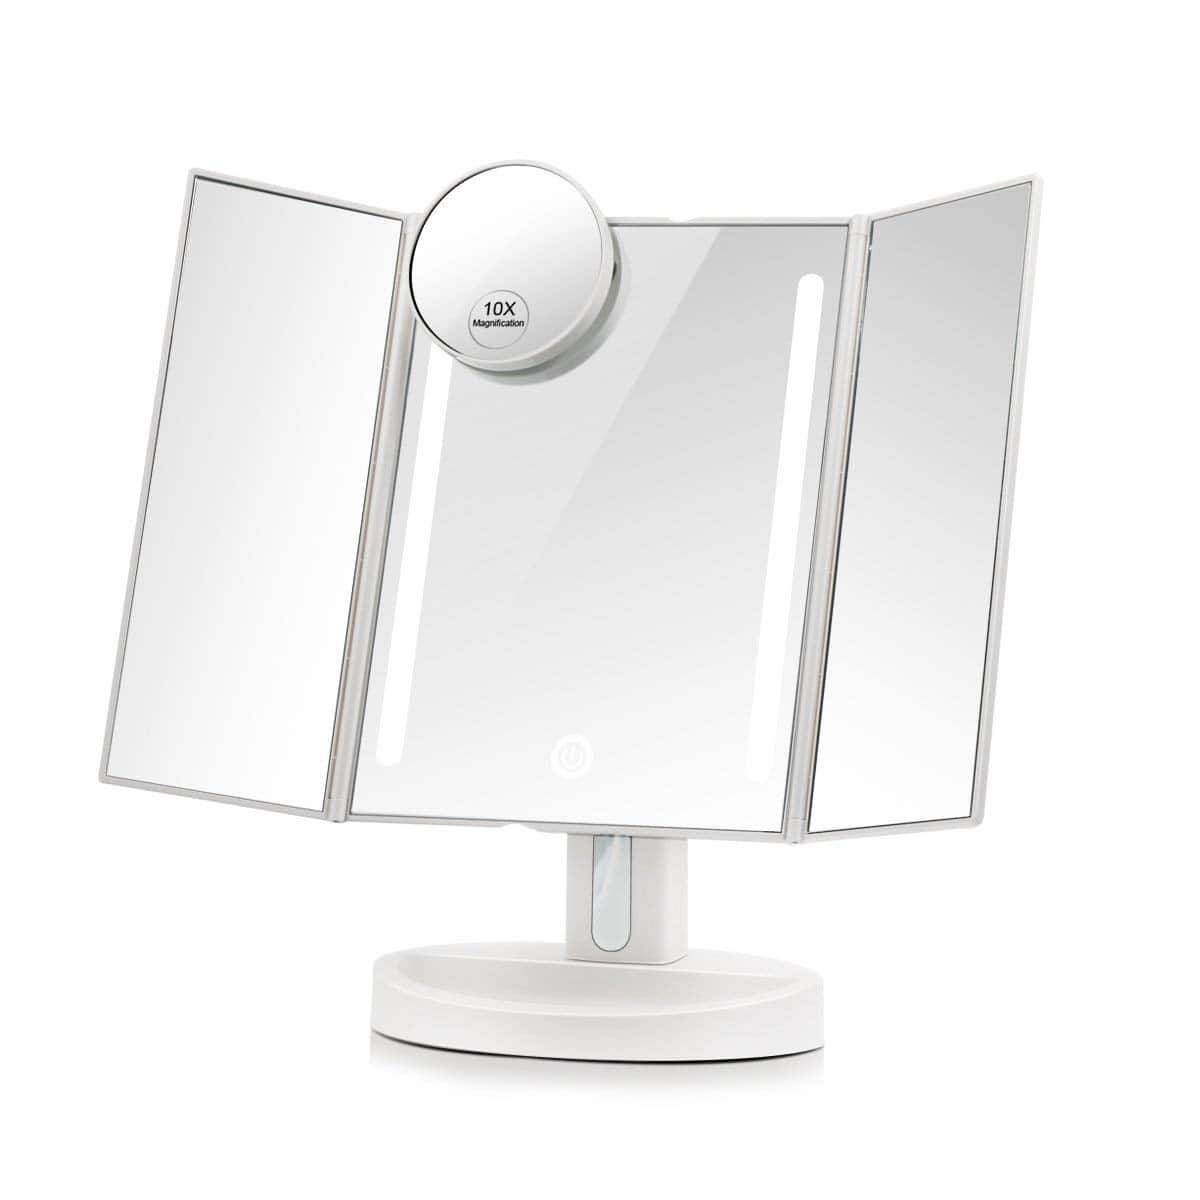 41% off Led Lighted Makeup Mirror: Touchscreen Trifold with 10X Magnification  $12.97 AC + FS